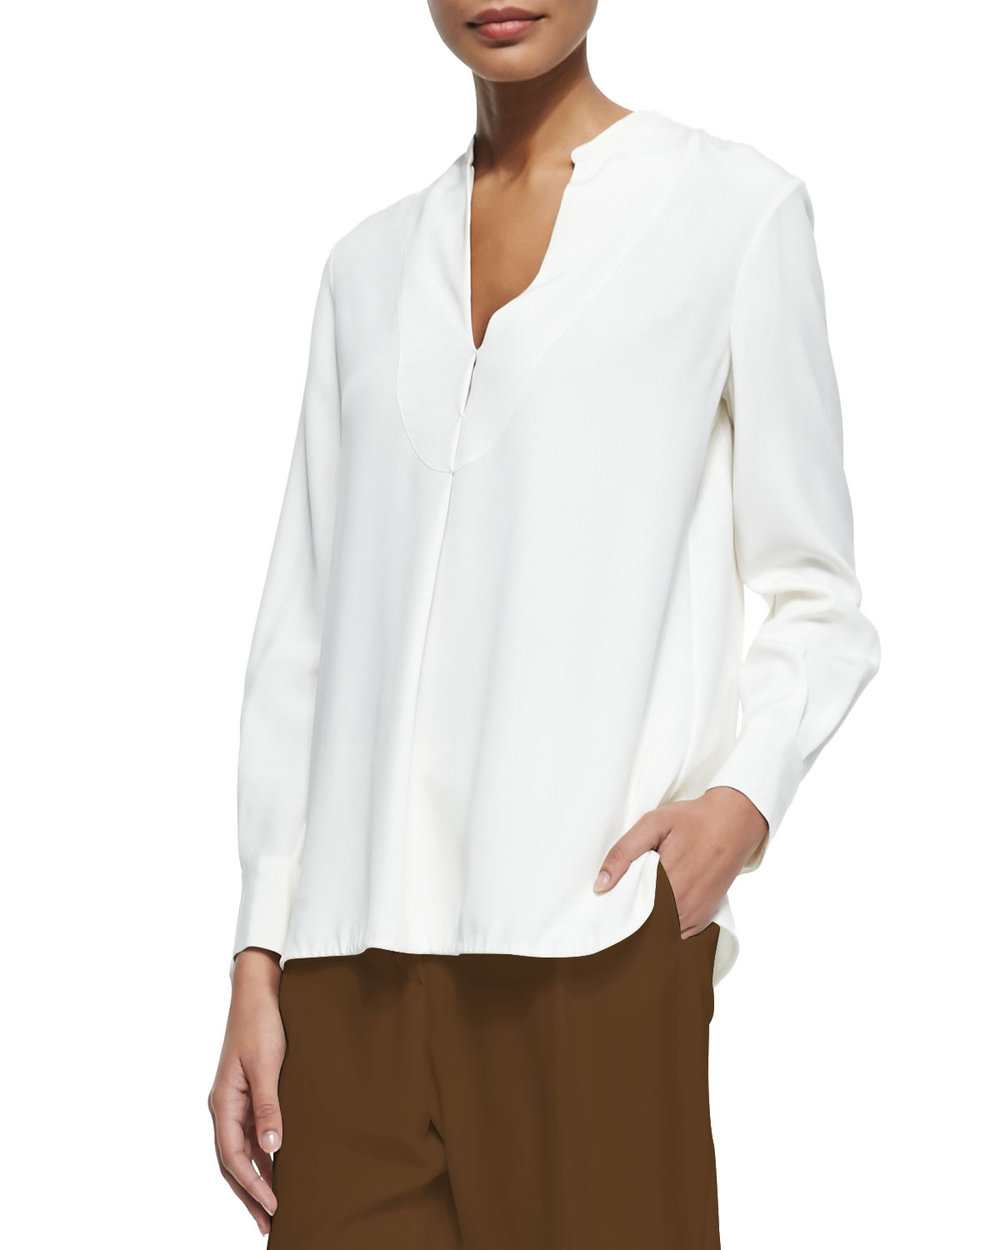 loro-piana-white-debra-stretch-silk-blouse-product-1-26969128-1-094956159-normal.jpeg